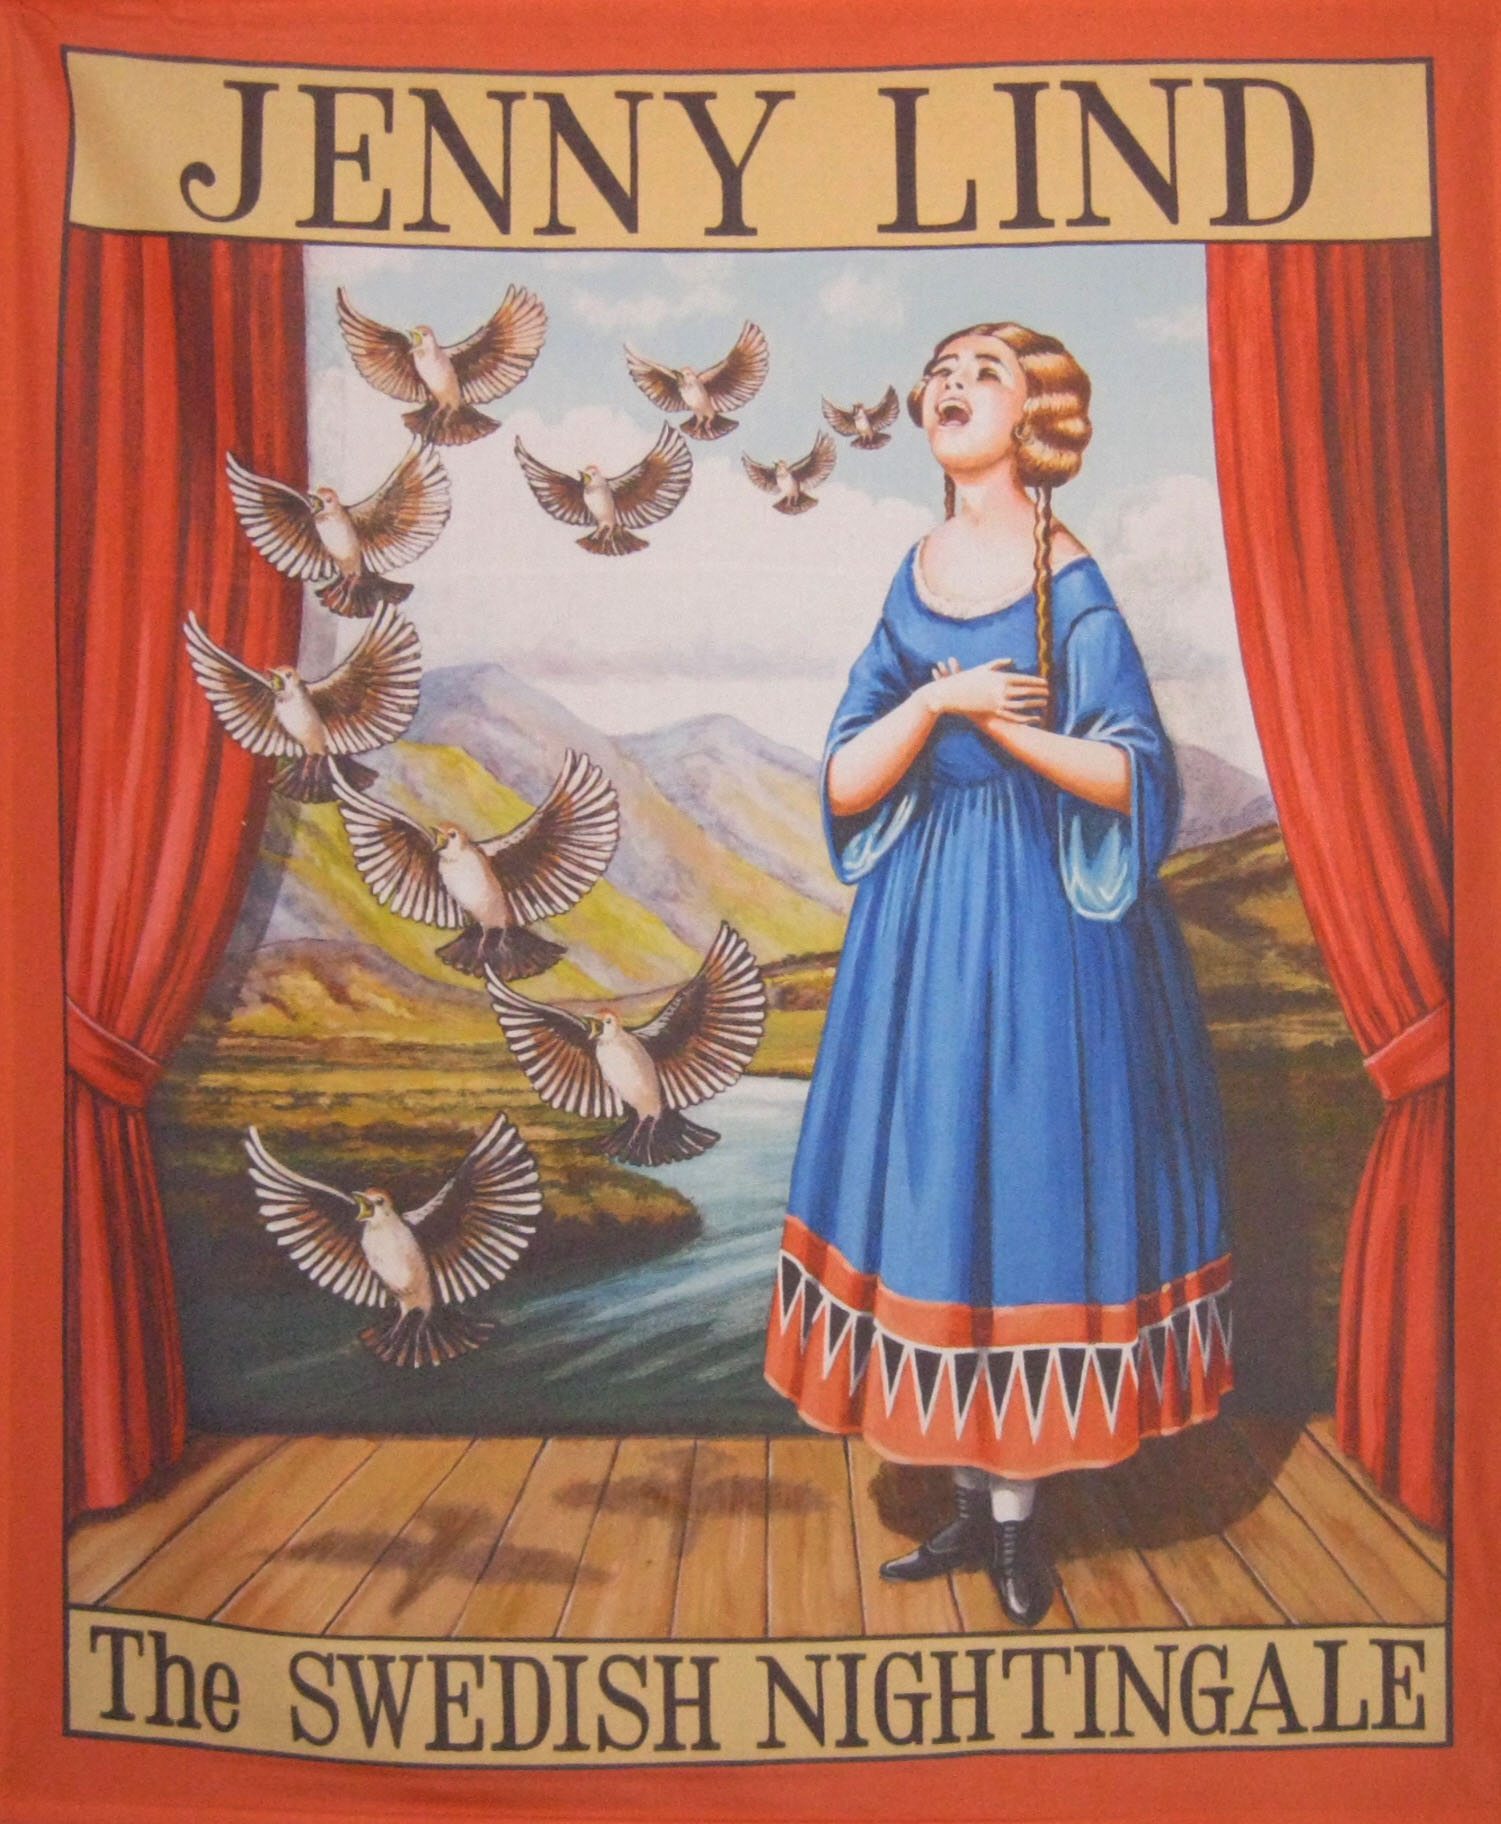 Jenny Lind the Swedish Nightingale. Poster from the collection of the University of Sheffield. Quelle: Wikipedia